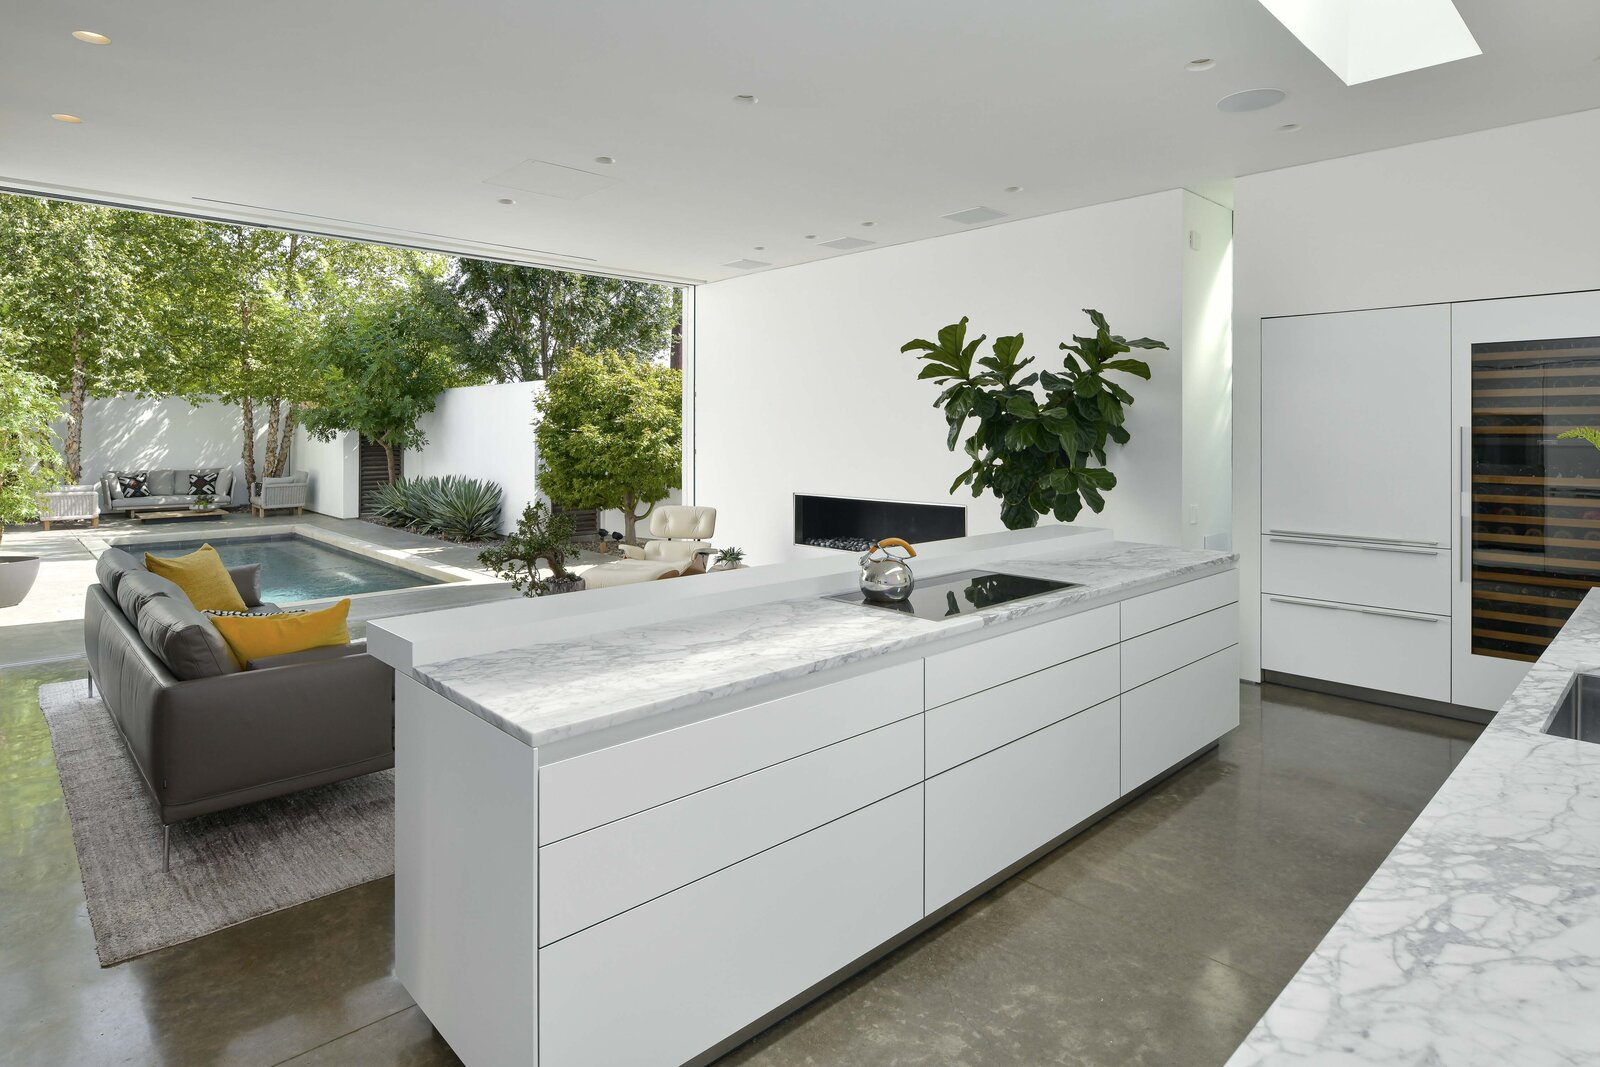 """Kitchen The Bulthaup kitchen features sleek cabinetry, marble countertops, and high-end appliances from <span style=""""font-family: Theinhardt, -apple-system, BlinkMacSystemFont, &quot;Segoe UI&quot;, Roboto, Oxygen-Sans, Ubuntu, Cantarell, &quot;Helvetica Neue&quot;, sans-serif;"""">Gaggenau and Sub-Zero. A central island overlooks the living room and courtyard, while a large skylight illuminates the space from above.</span>  Photo 4 of 11 in A Chic Urban Retreat by Modernist Architect Lionel Morrison Asks $2.5M in Dallas"""